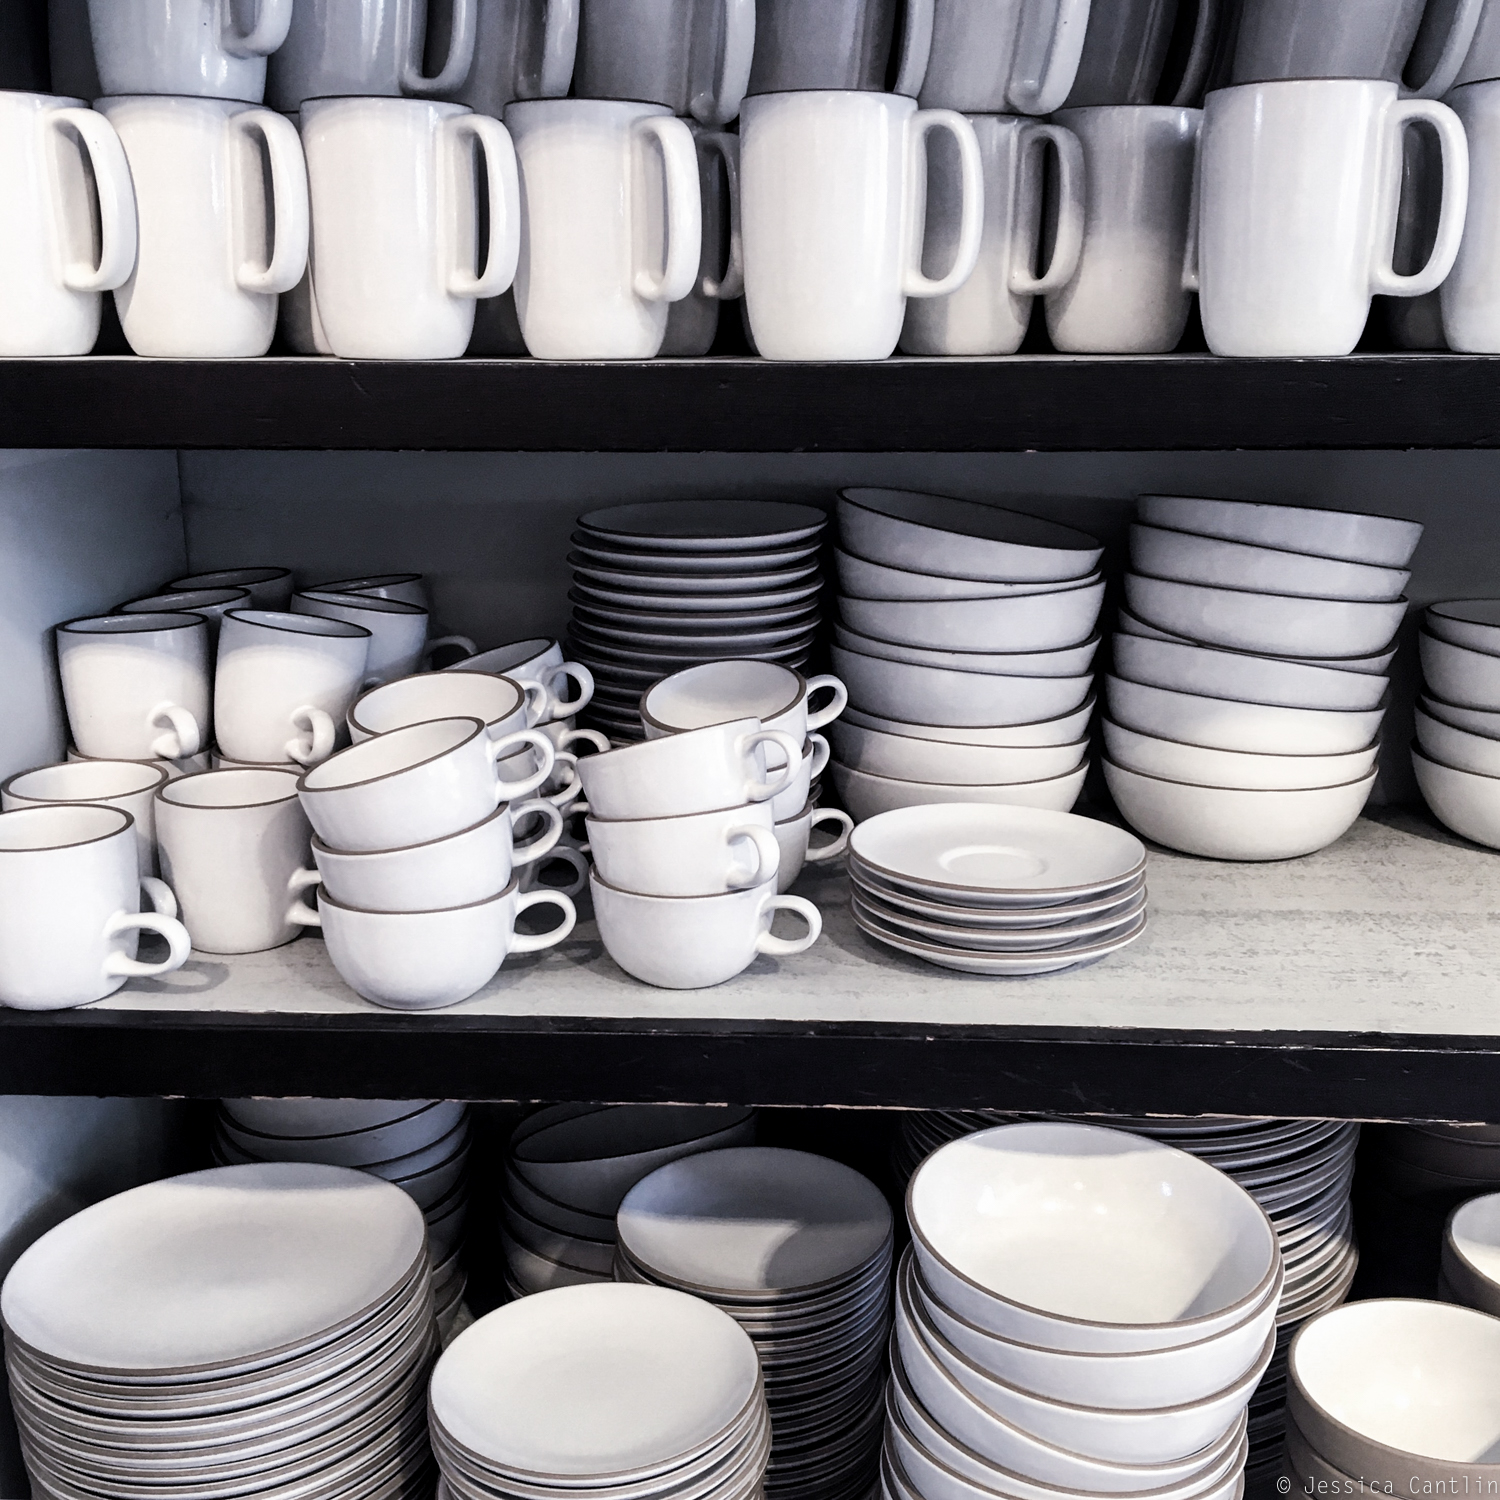 Dishes at Heath Ceramics